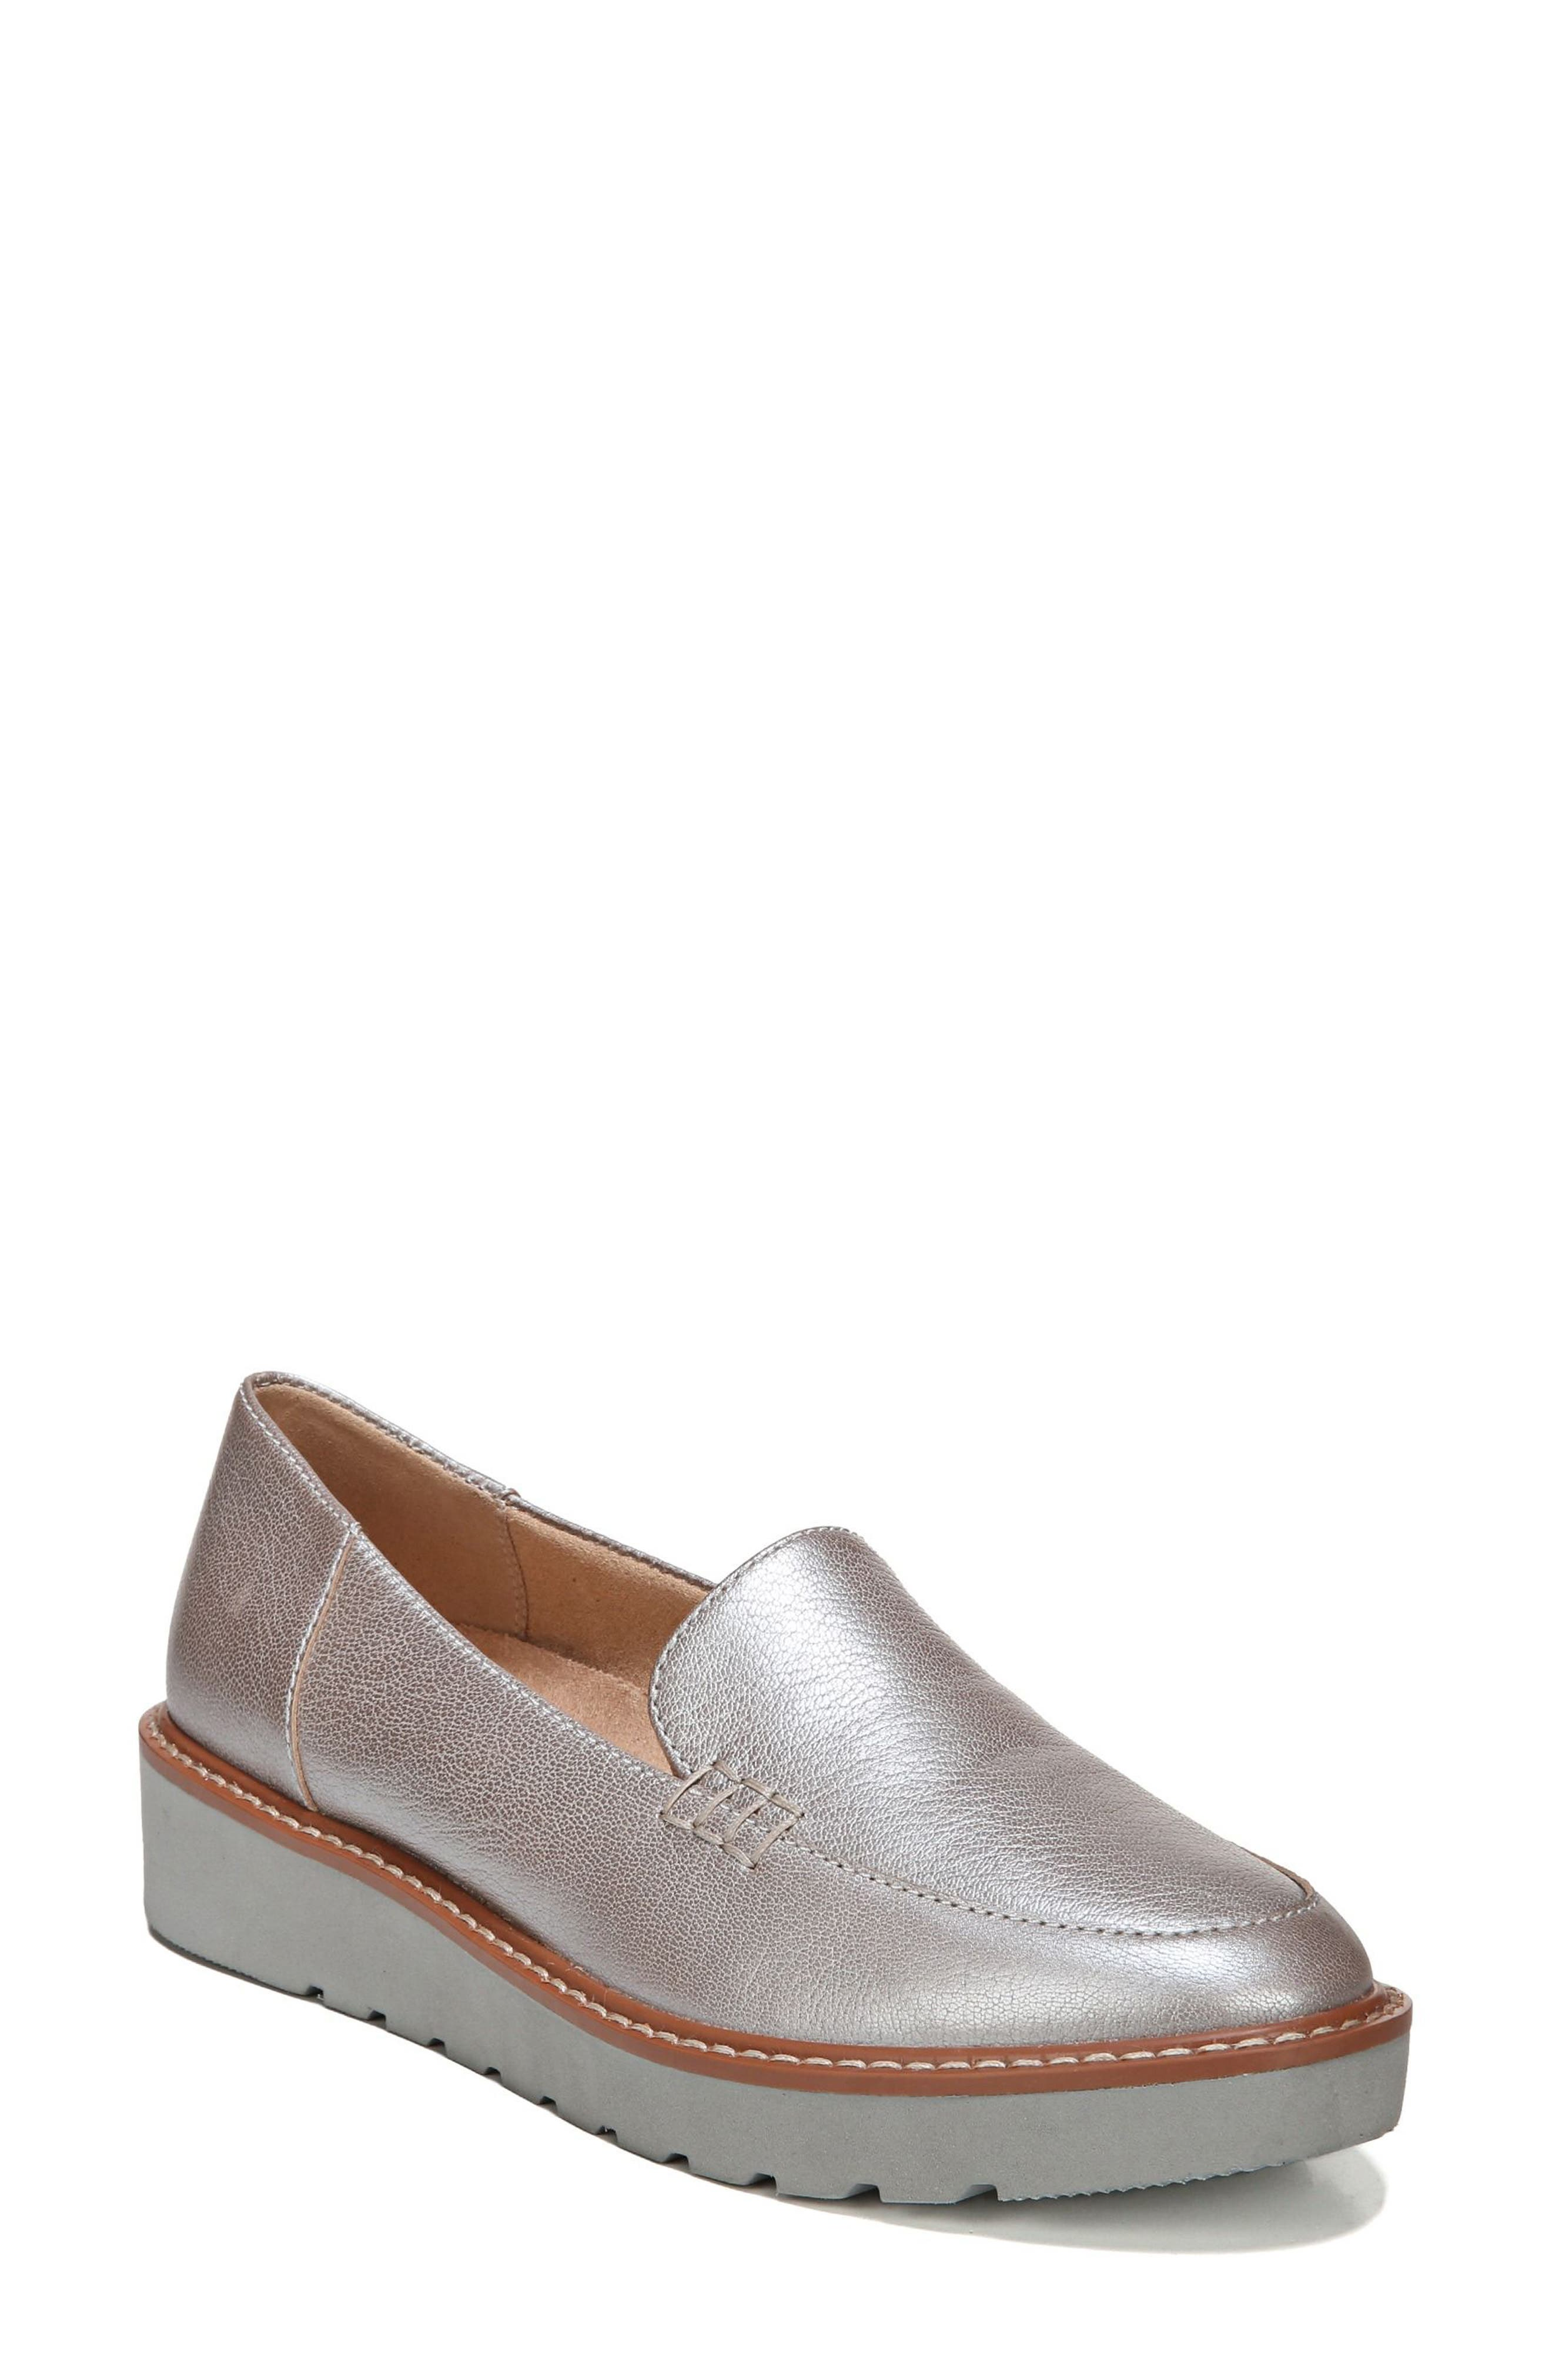 Andie Loafer,                         Main,                         color, Silver Leather